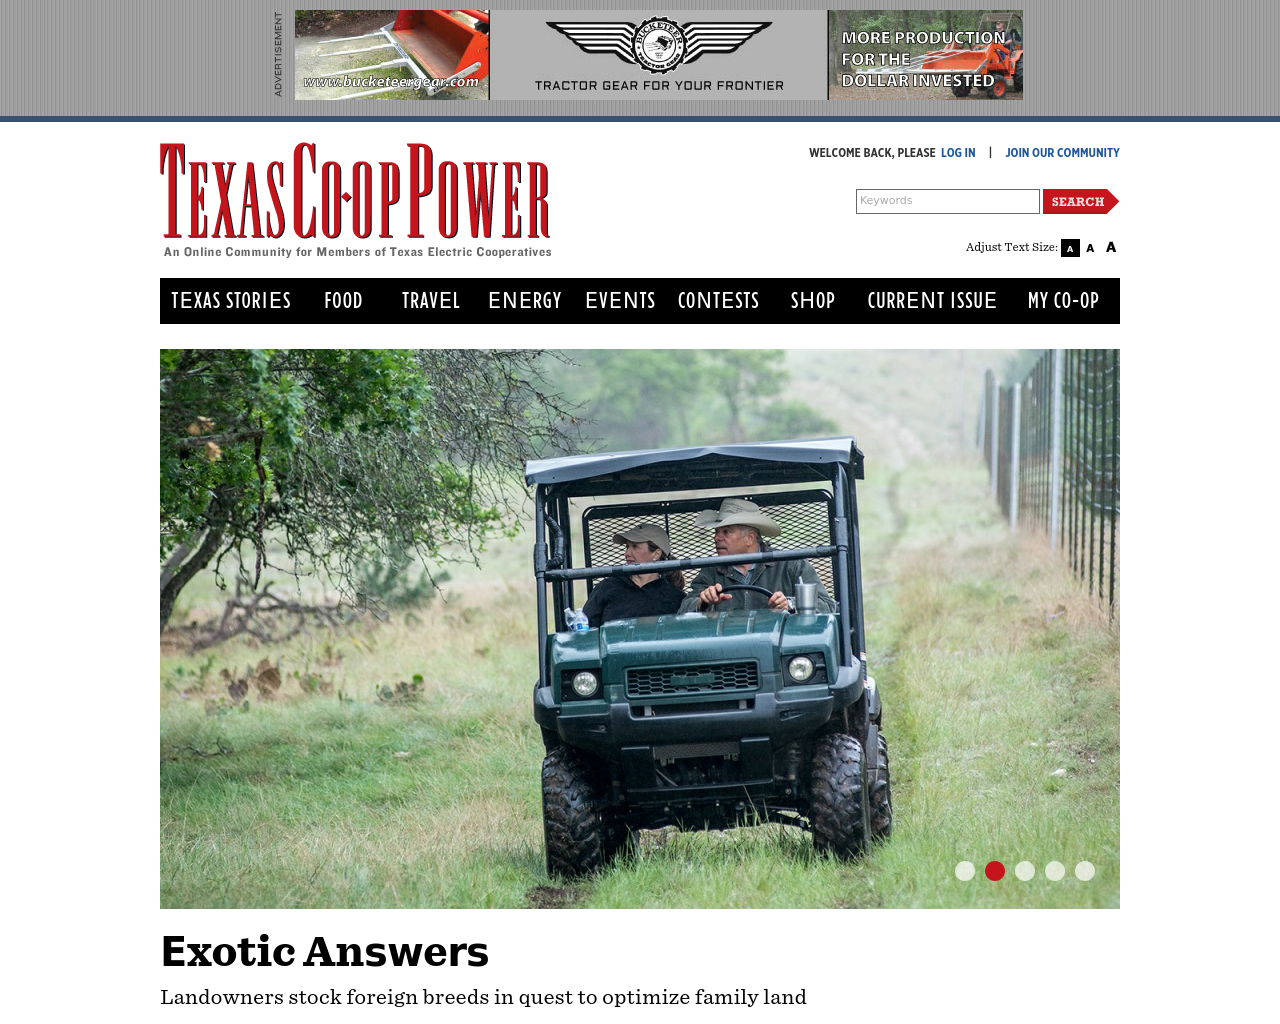 Texas-Co-op-Power-Advertising-Reviews-Pricing